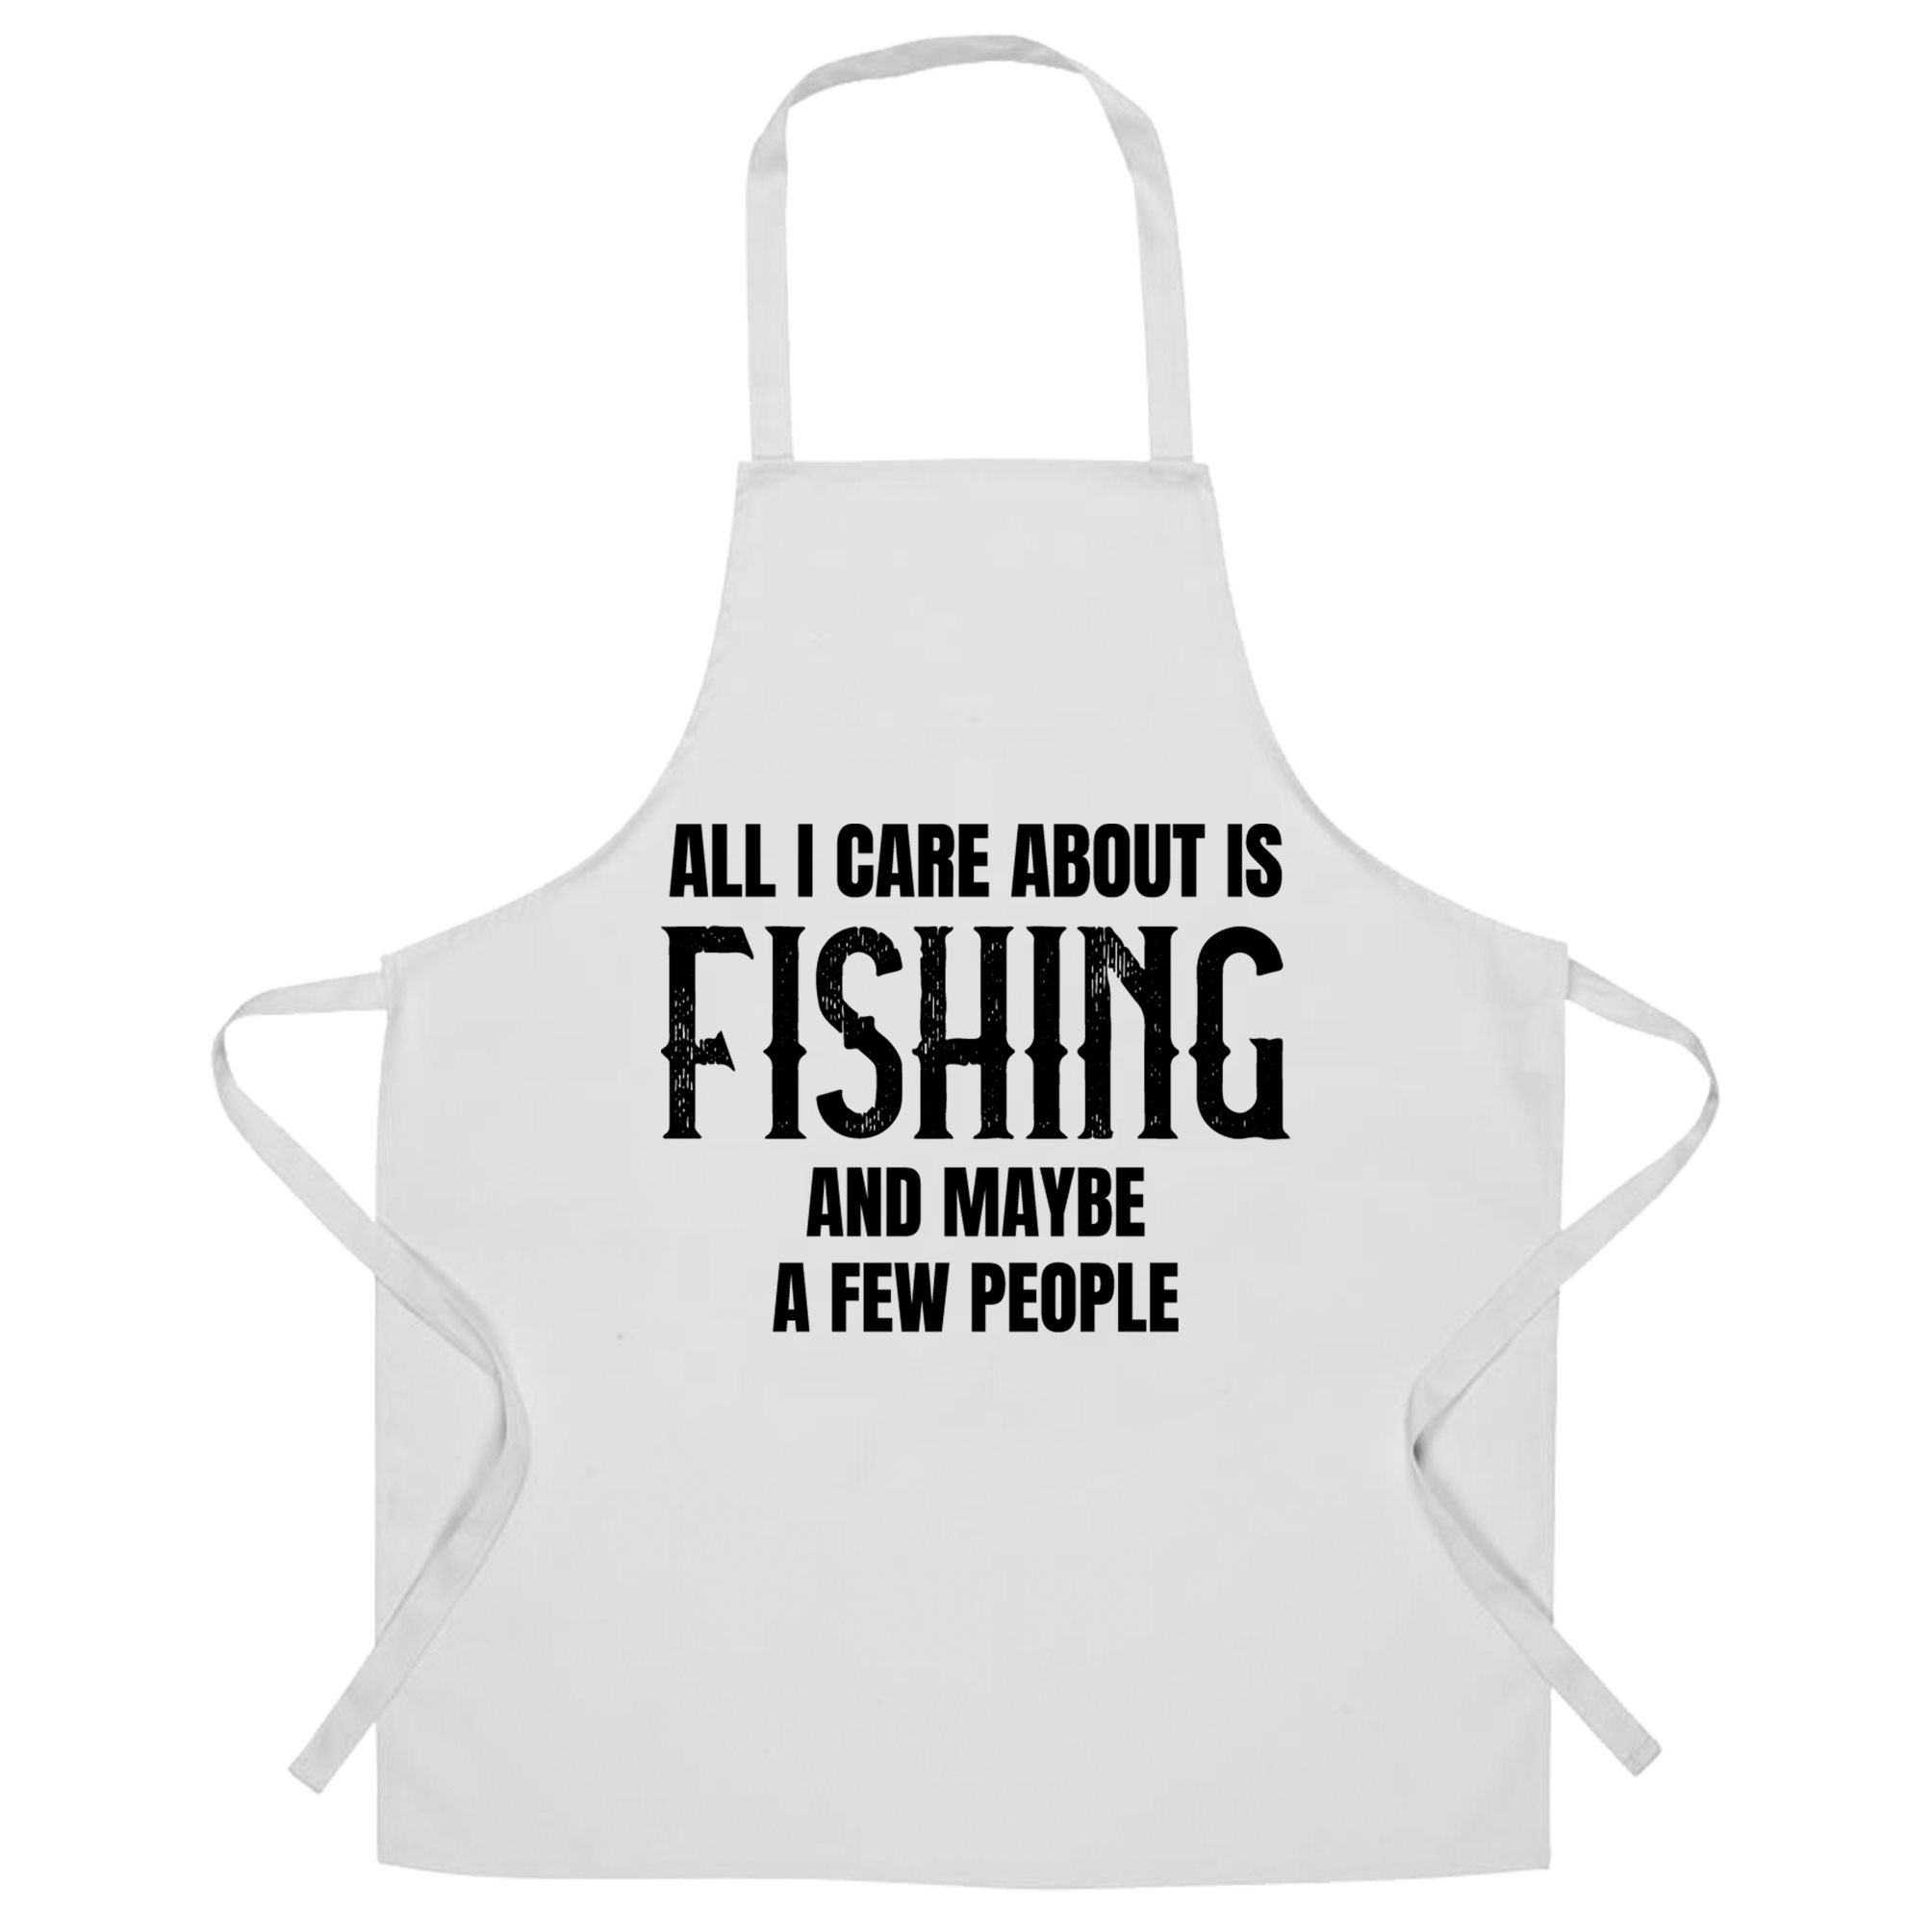 I Hold My Rod Fishing BBQ Cooking Funny Novelty Apron